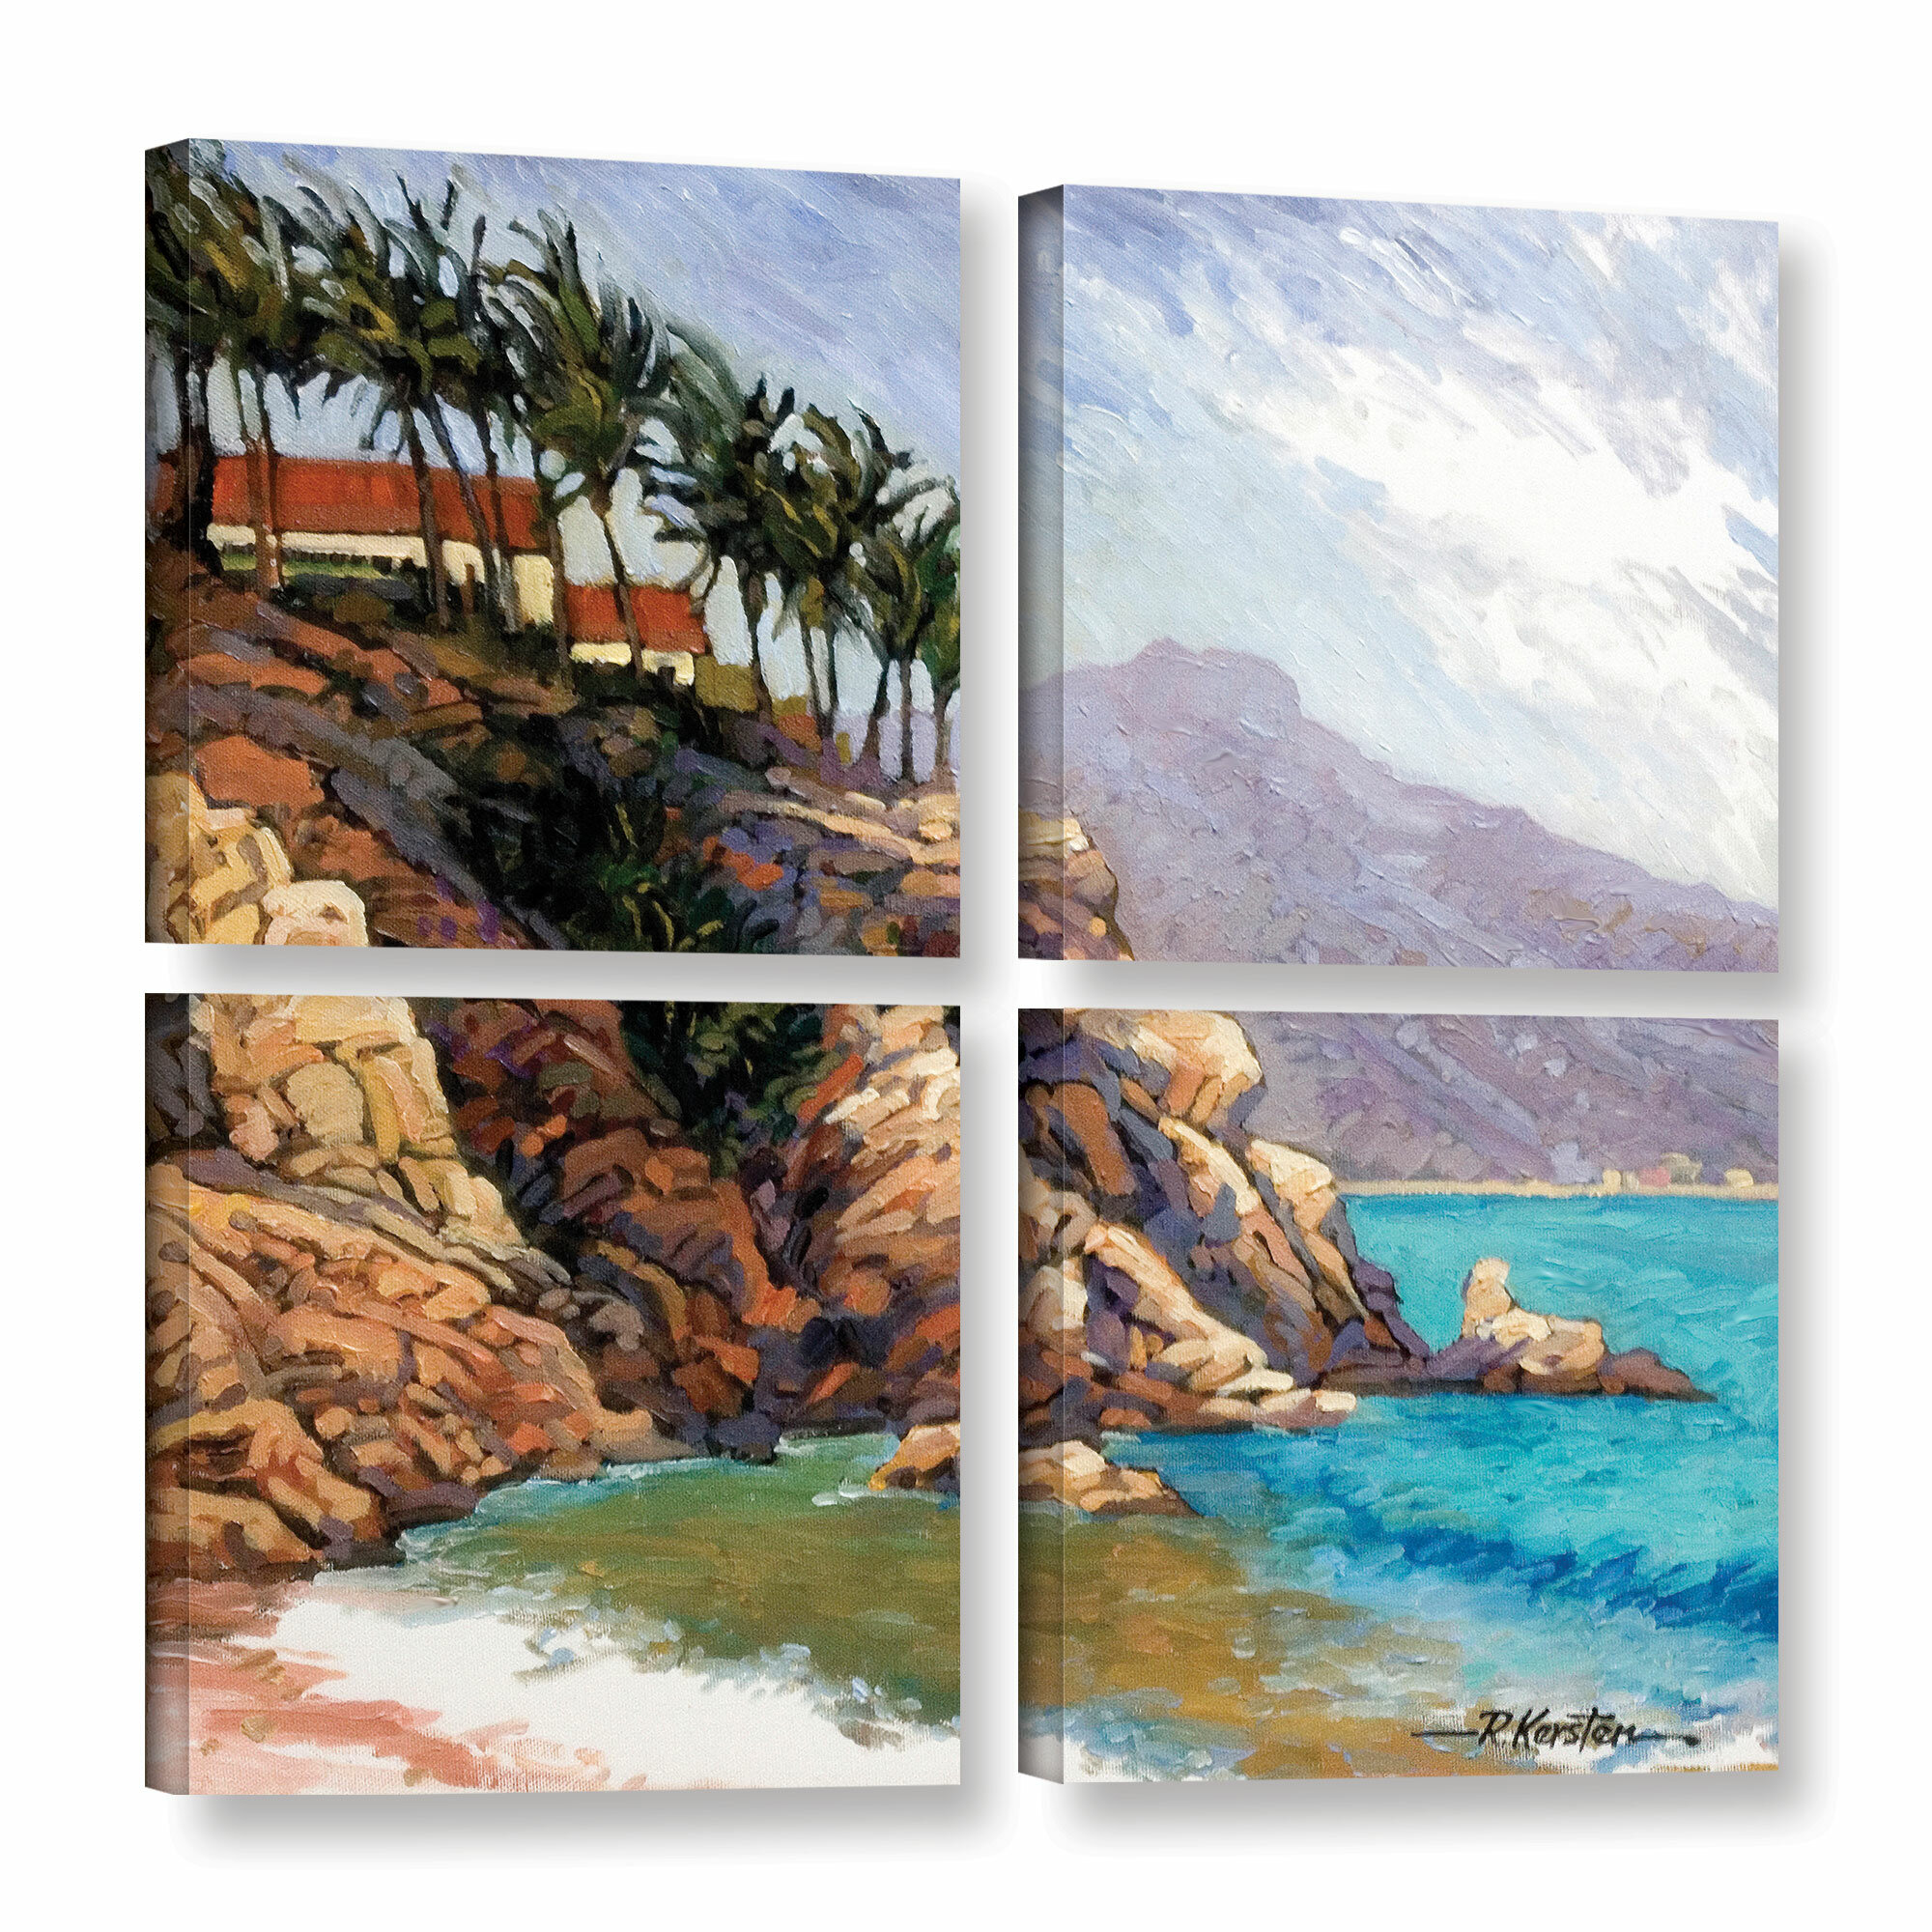 ArtWall Cabo San Lucas By Rick Kersten 4 Piece Painting Print On Wrapped Canvas Square Set